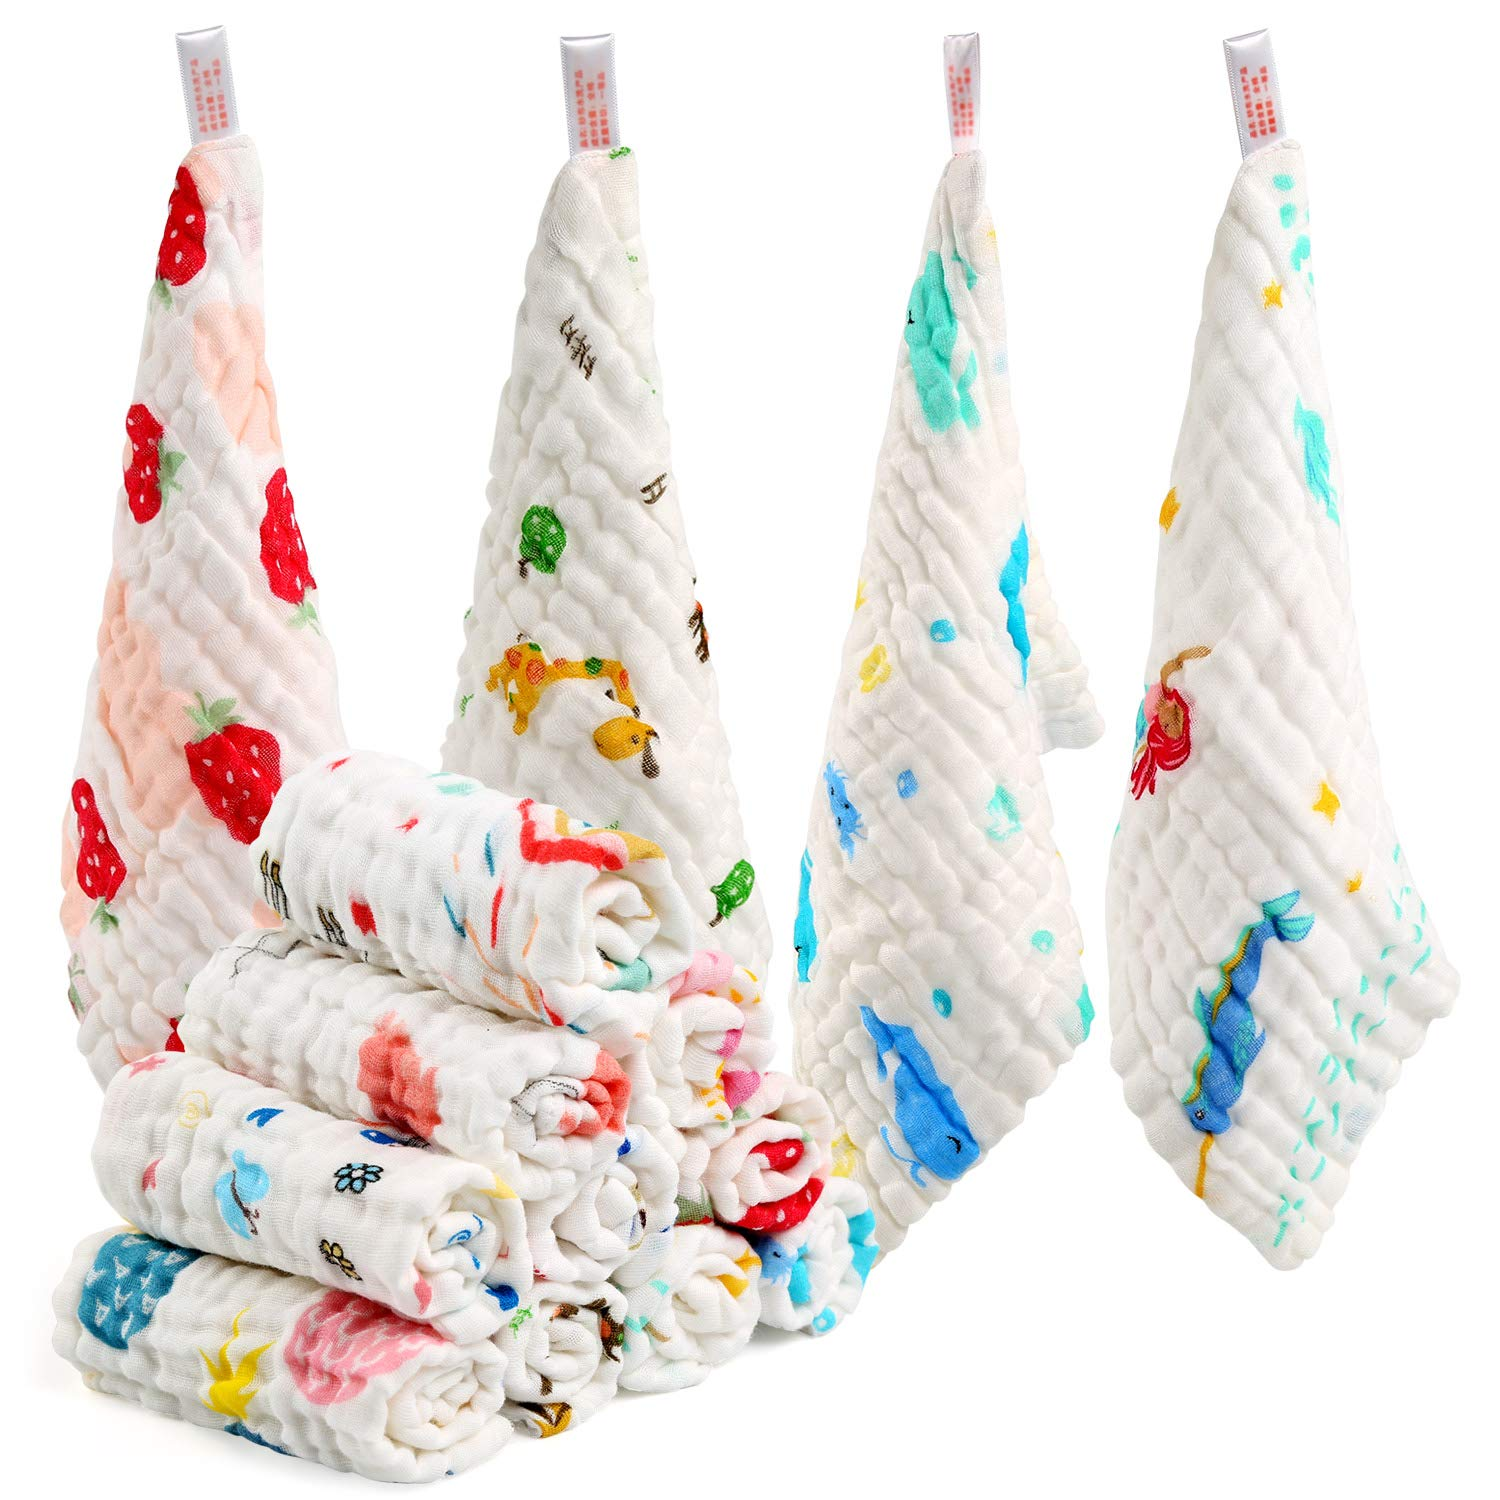 LEADSTAR Baby Muslin Washcloths 10 PCS Baby Towels Reusable Baby Wipes Cotton Squares Face Shower Bath Towel Soft Baby Wiping Bathing Feeding Towel for Newborn Baby Gift